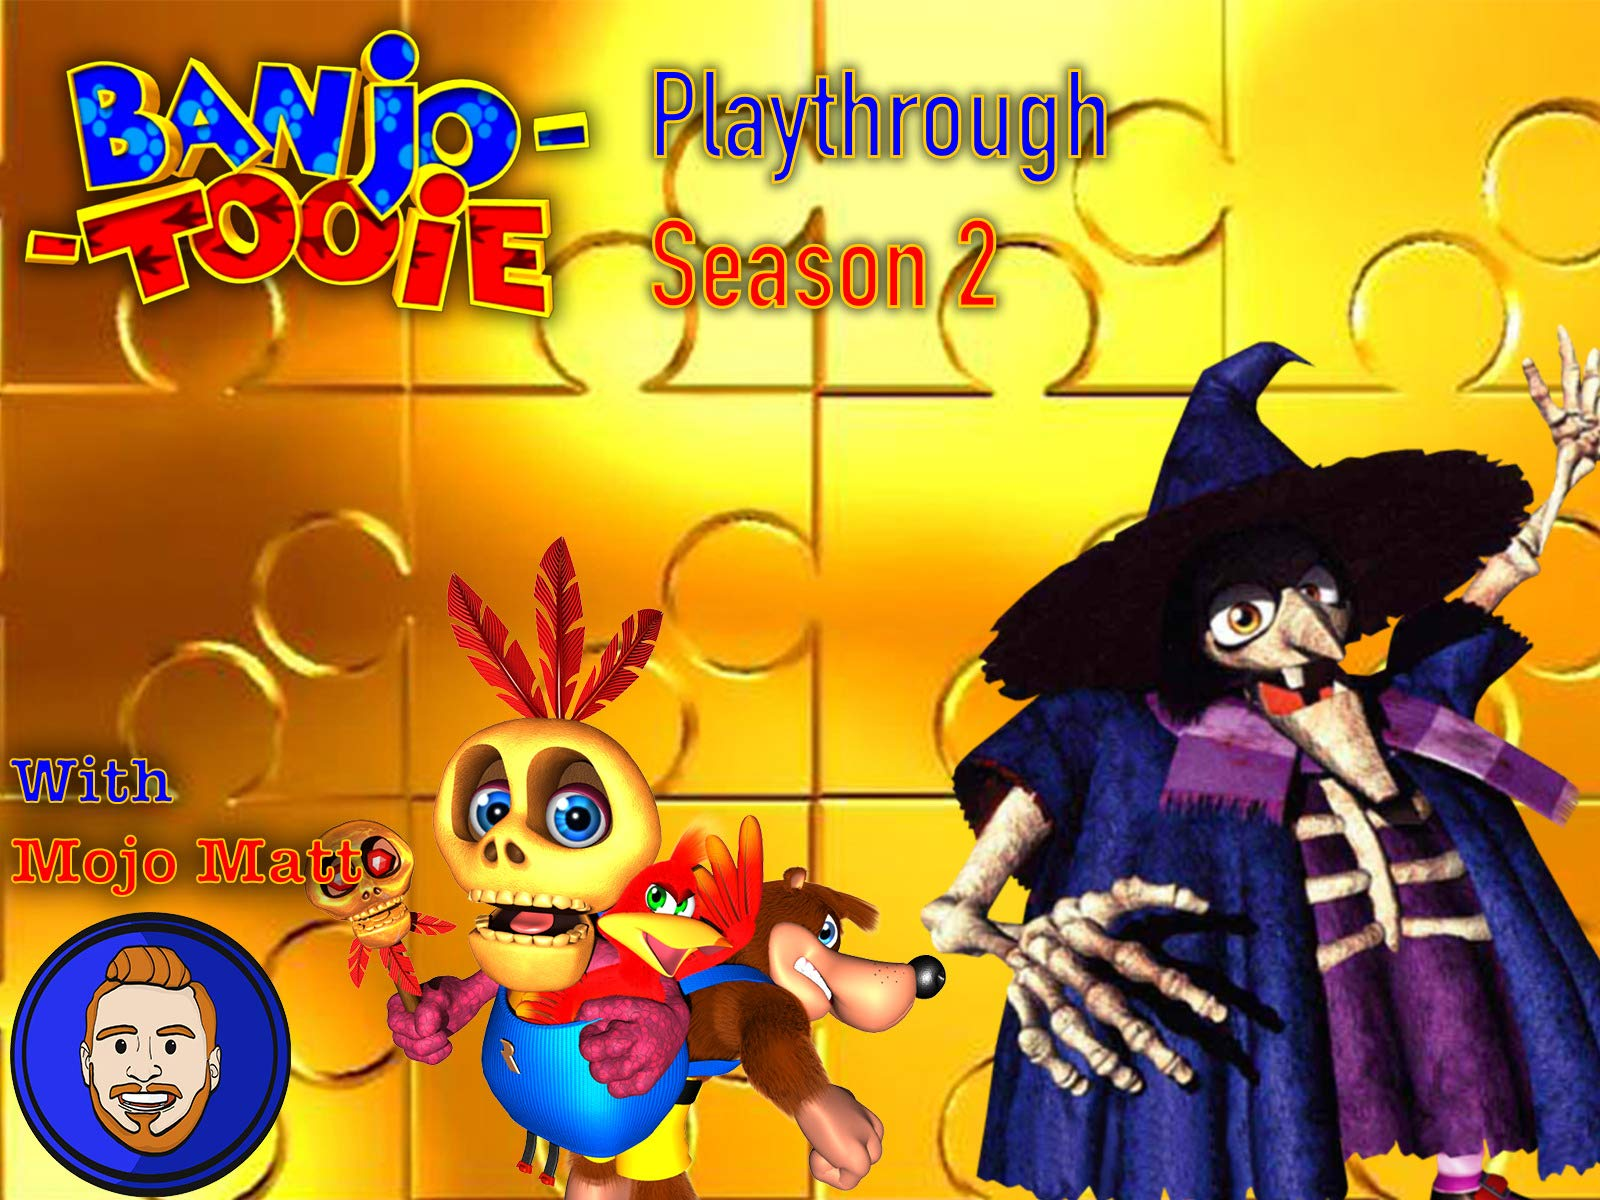 Banjo-Tooie Playthrough with Mojo Matt